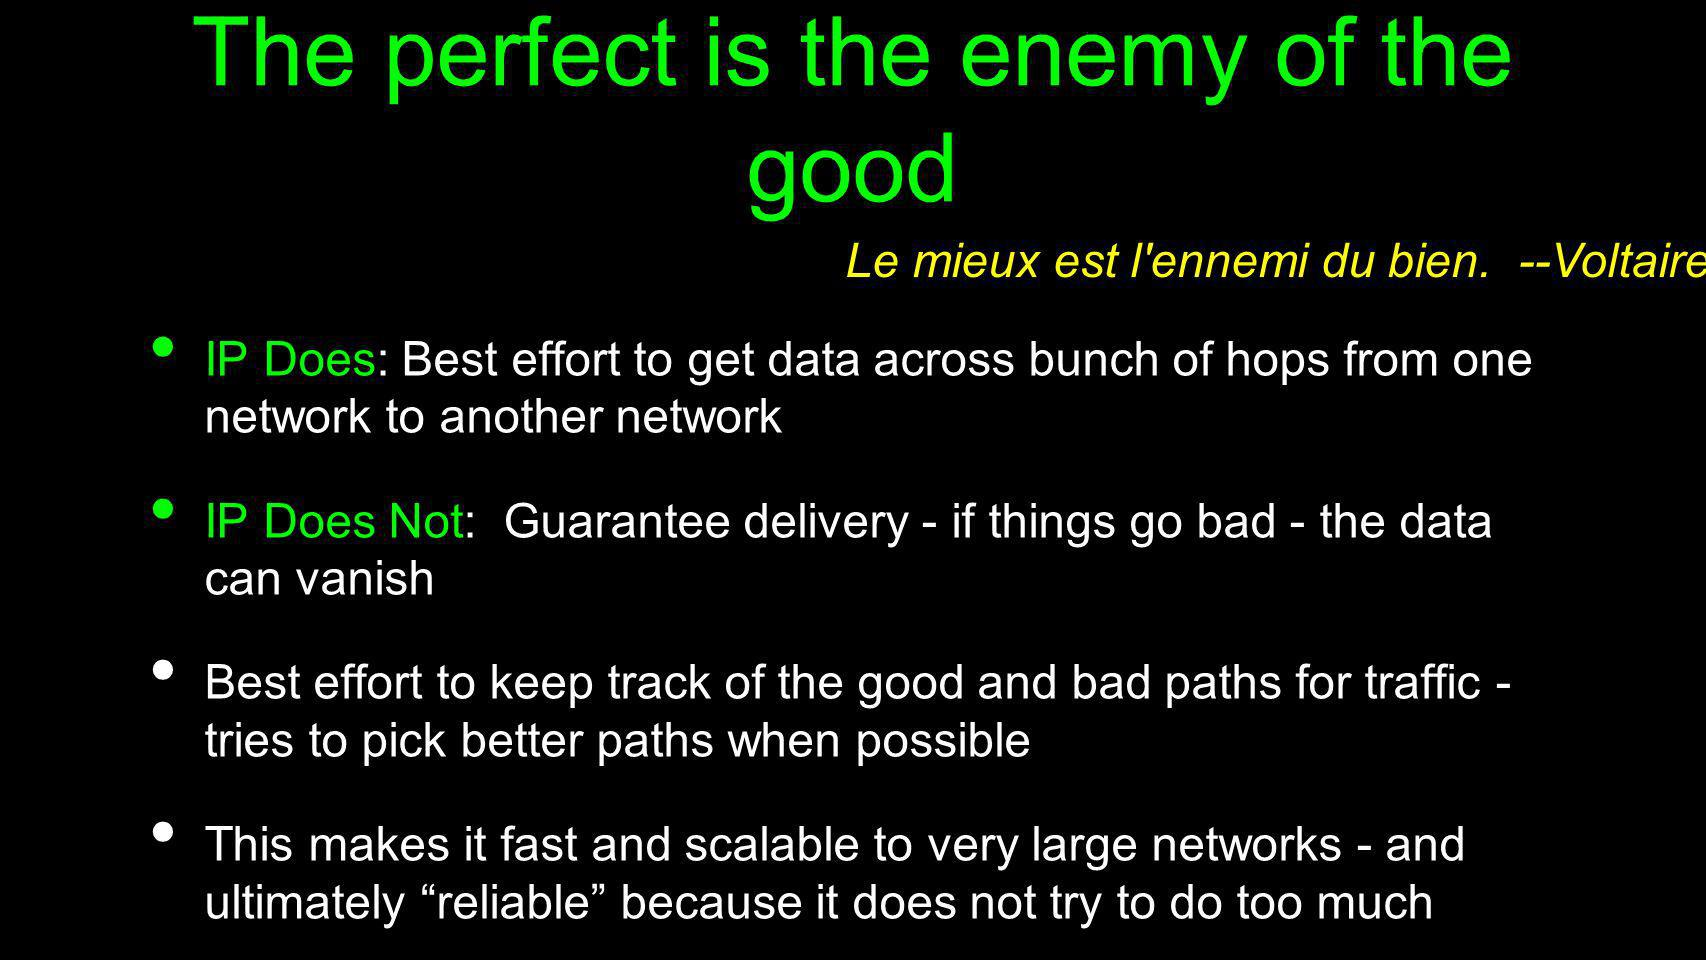 The perfect is the enemy of the good IP Does: Best effort to get data across bunch of hops from one network to another network IP Does Not: Guarantee